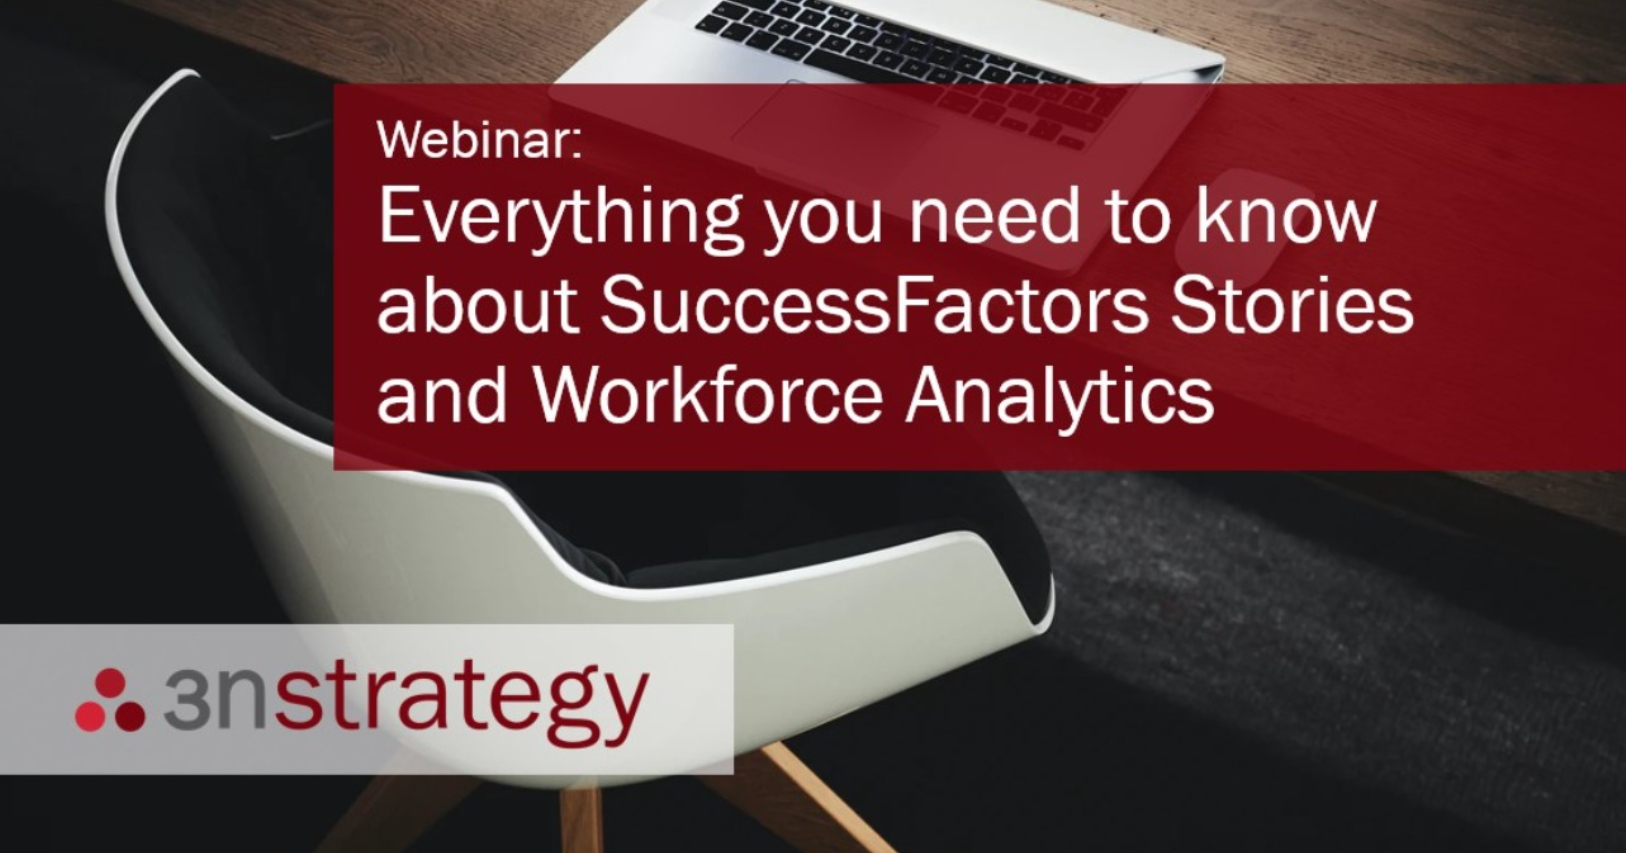 Everything you need to know about SuccessFactors Stories & Workforce Analytics